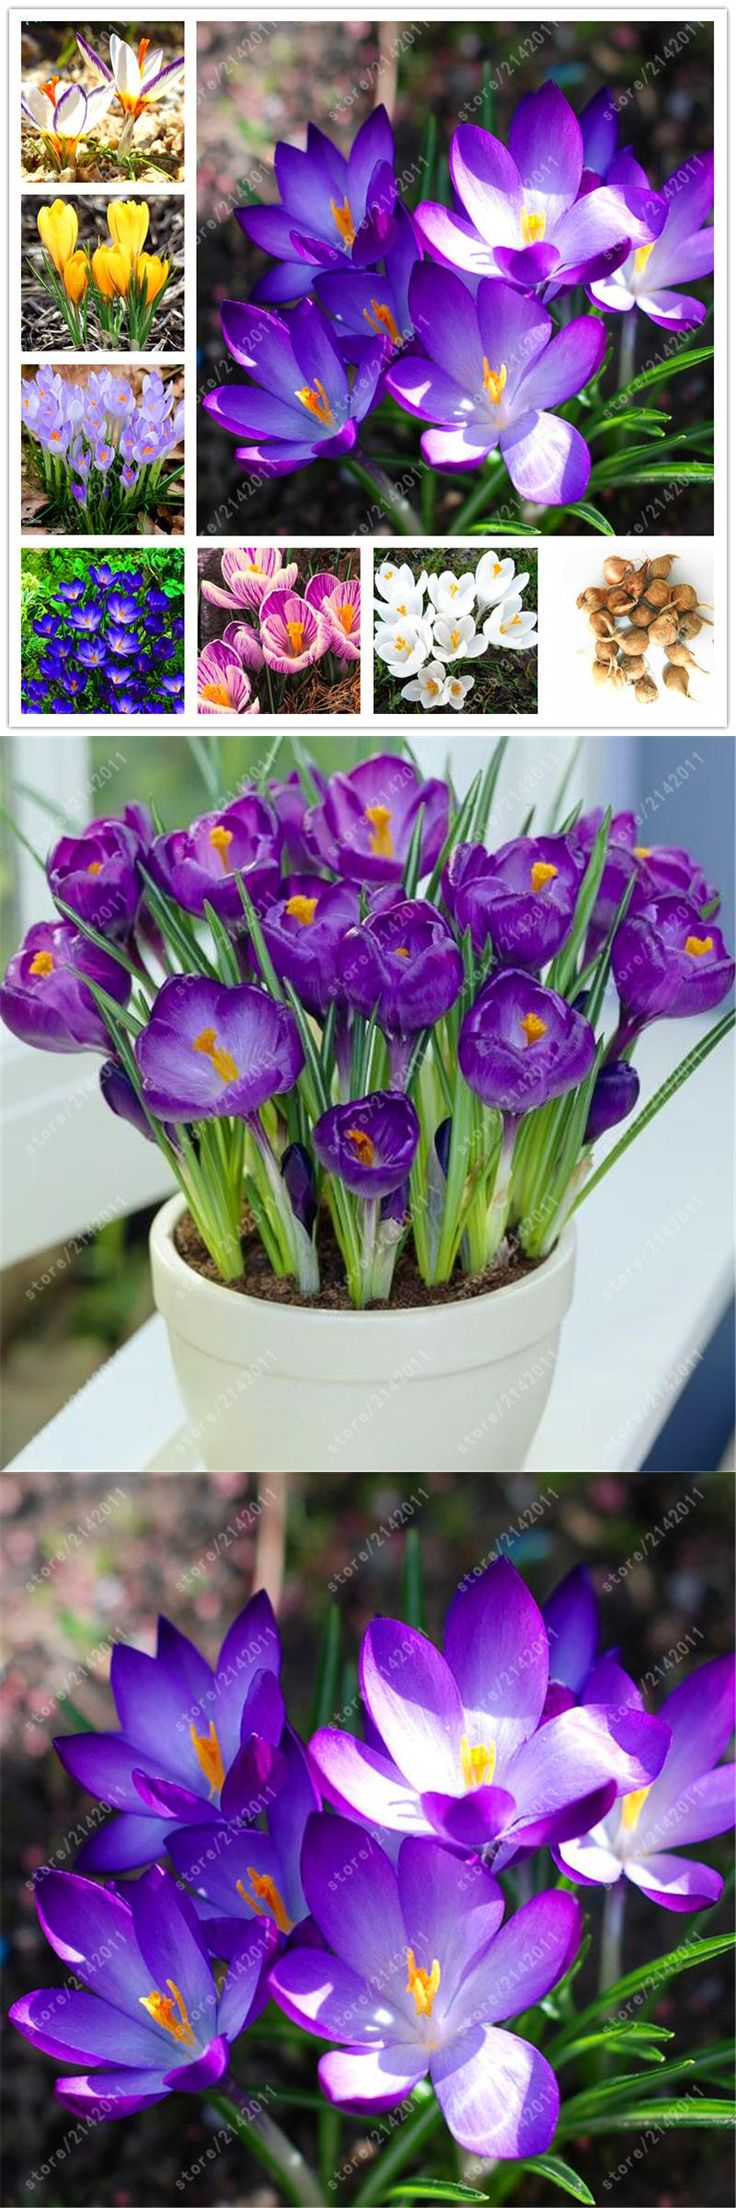 [Visit to Buy] True crocus saffron bulbs,(not saffron seeds),bonsai flower bulbs  In Bloom All Year Round potted plant - 2 bulbs #Advertisement